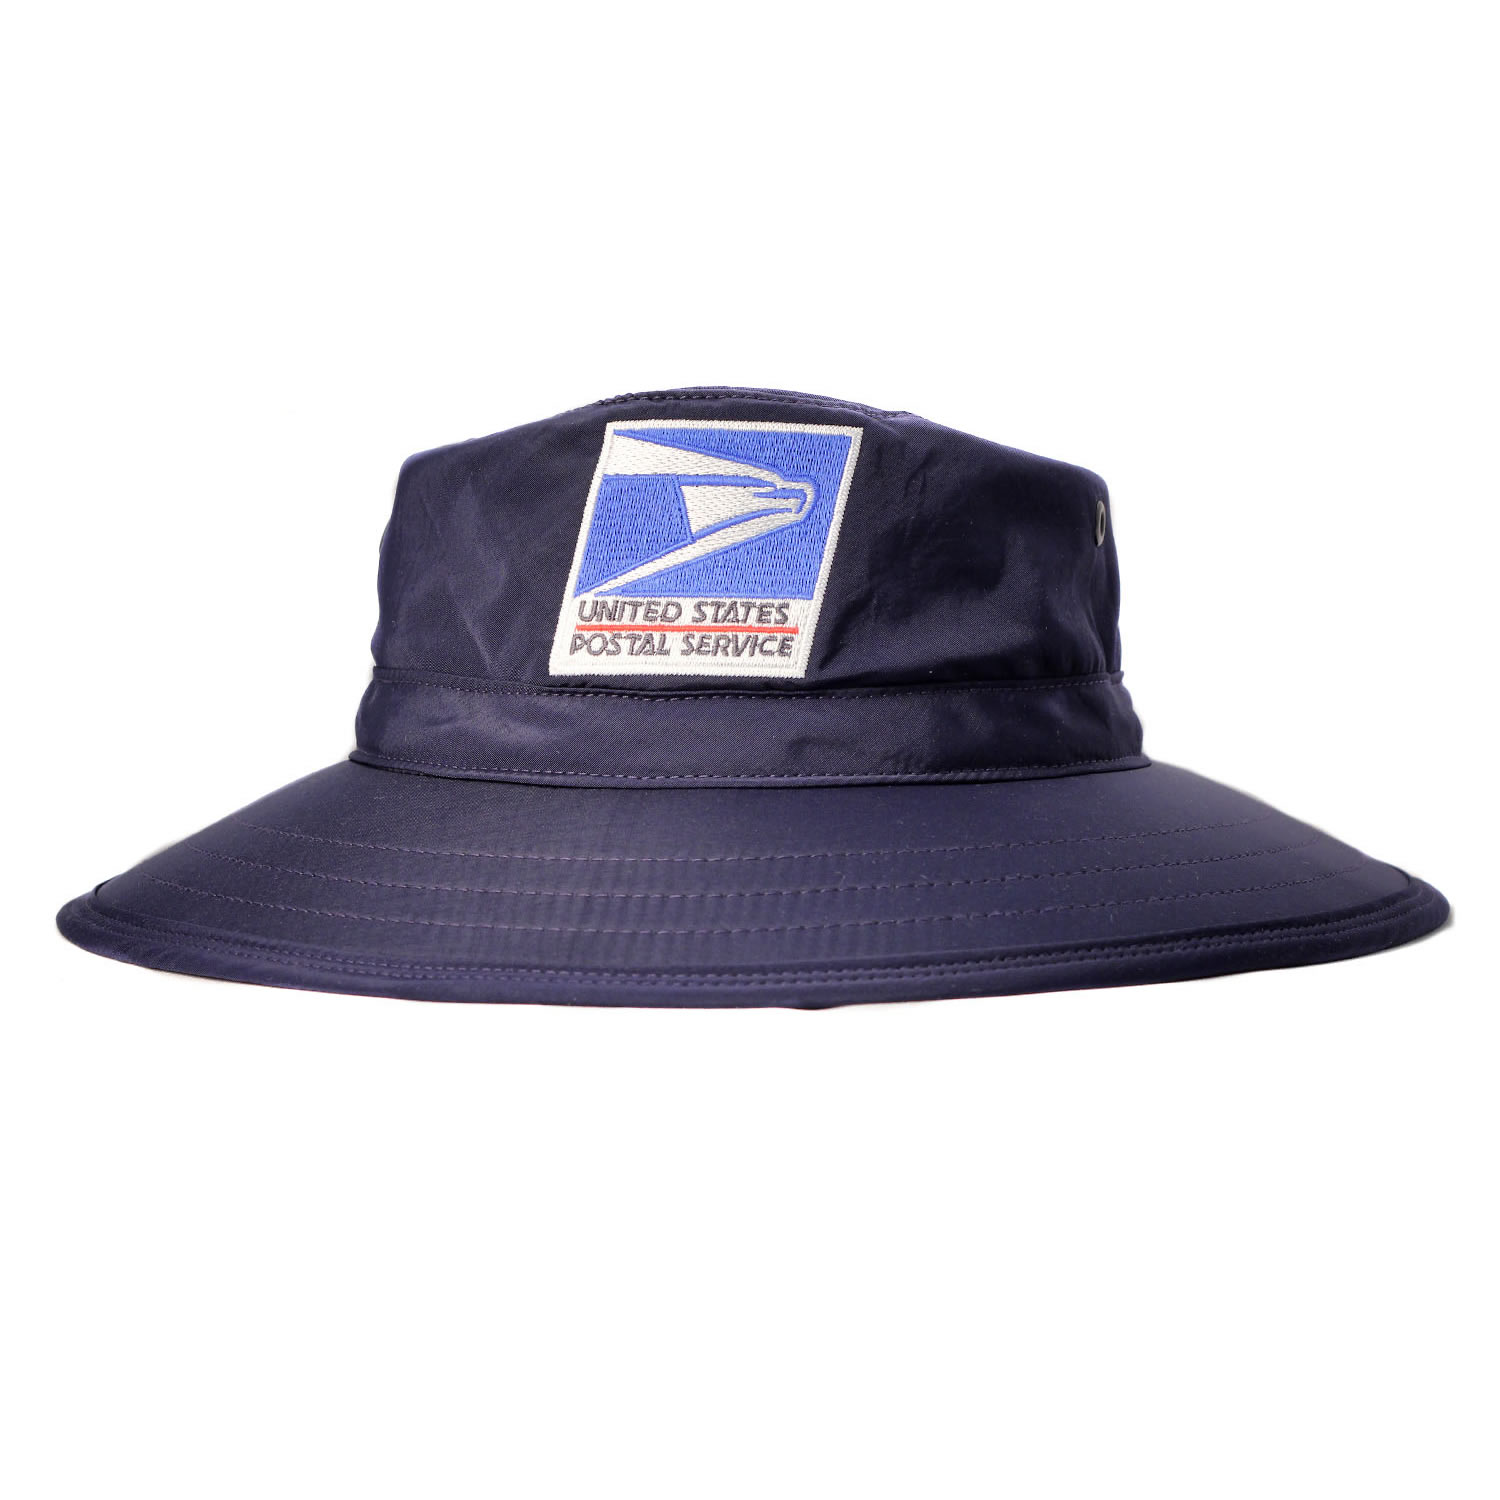 <br>(Postal Uniform Sun Hat for Letter Carriers